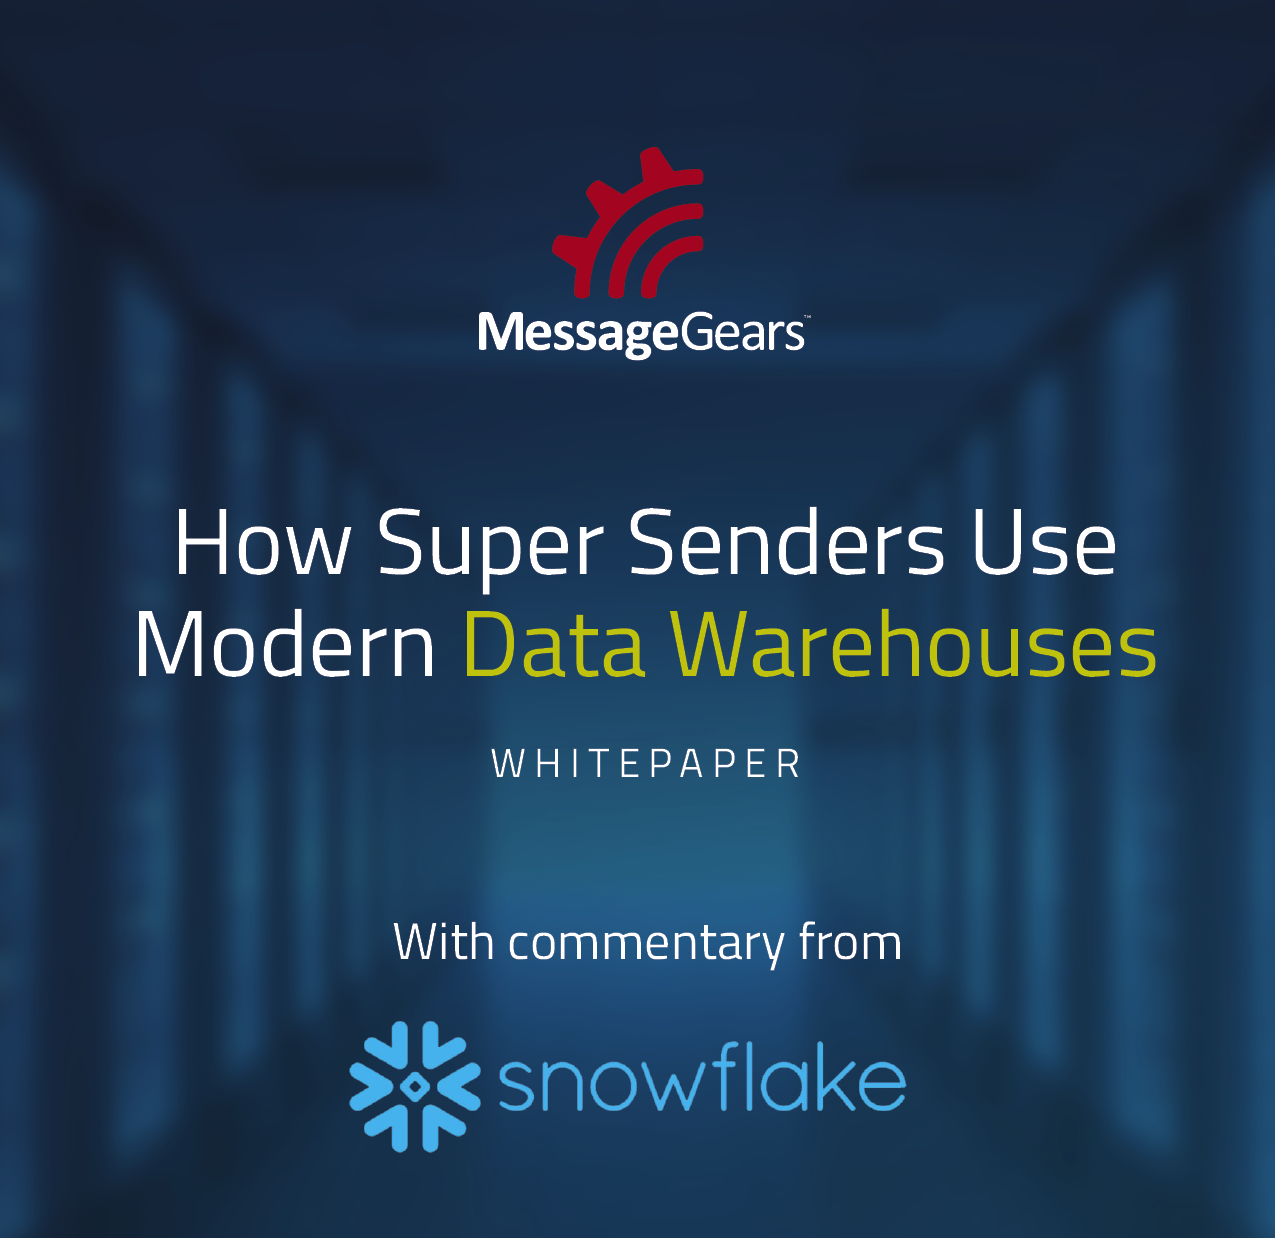 How Super Senders Use Modern Data Warehouses